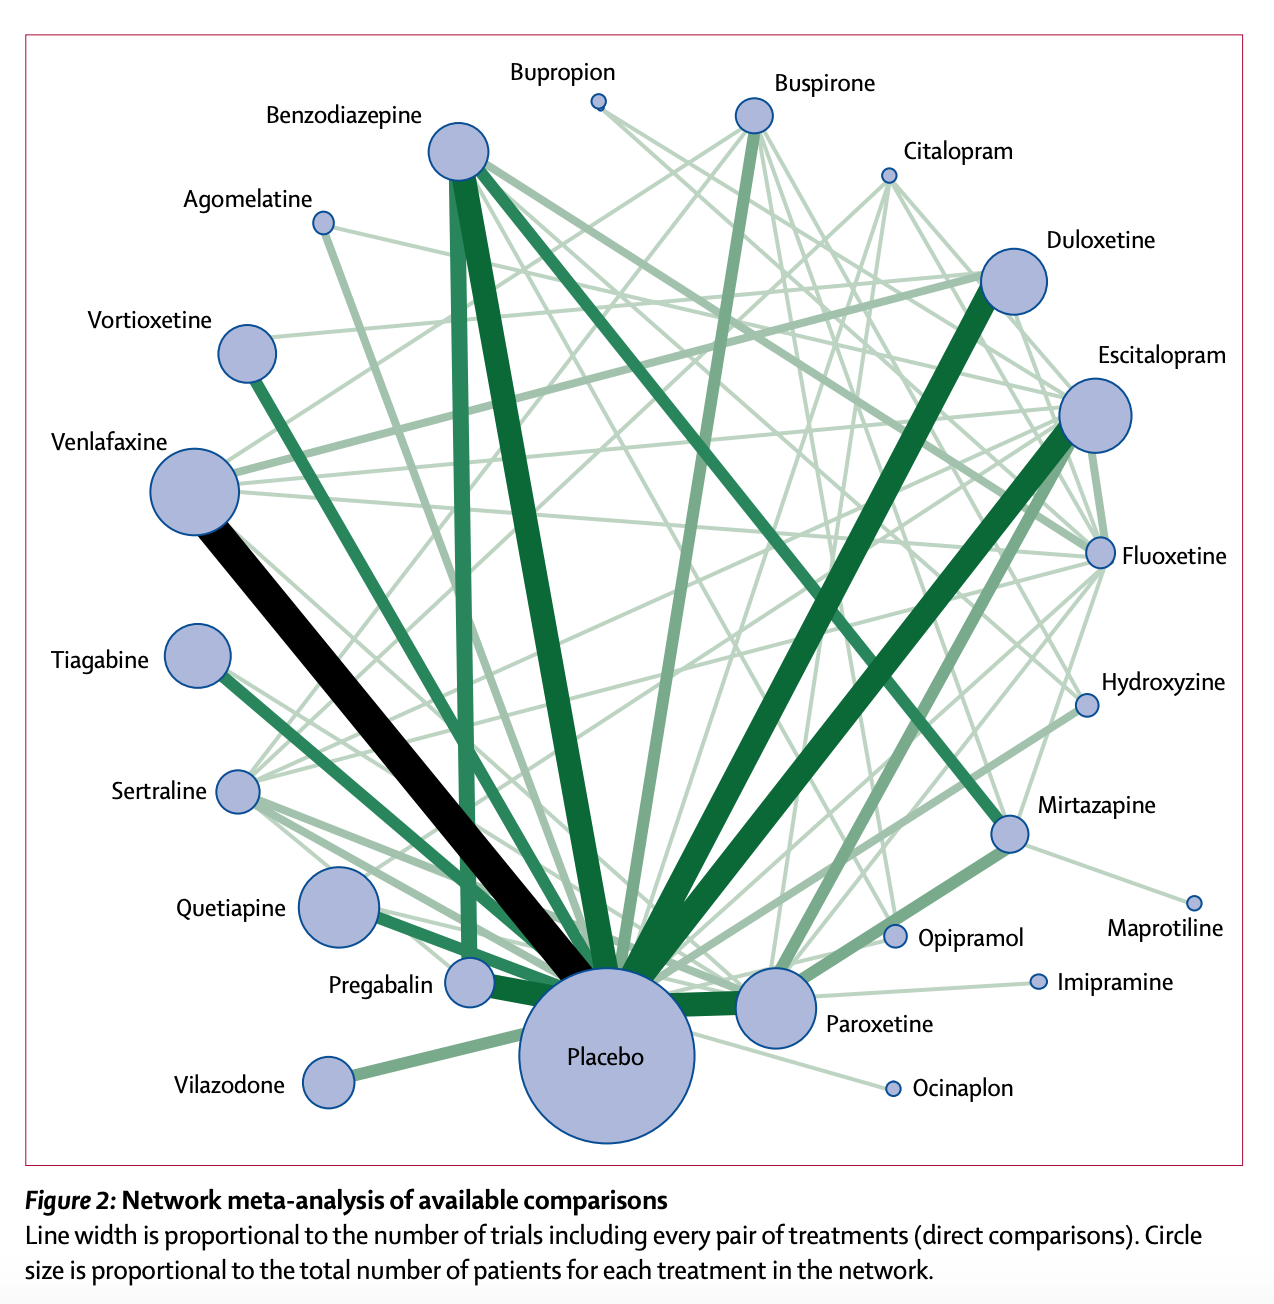 Medication for generalised anxiety disorder: new network meta-analysis